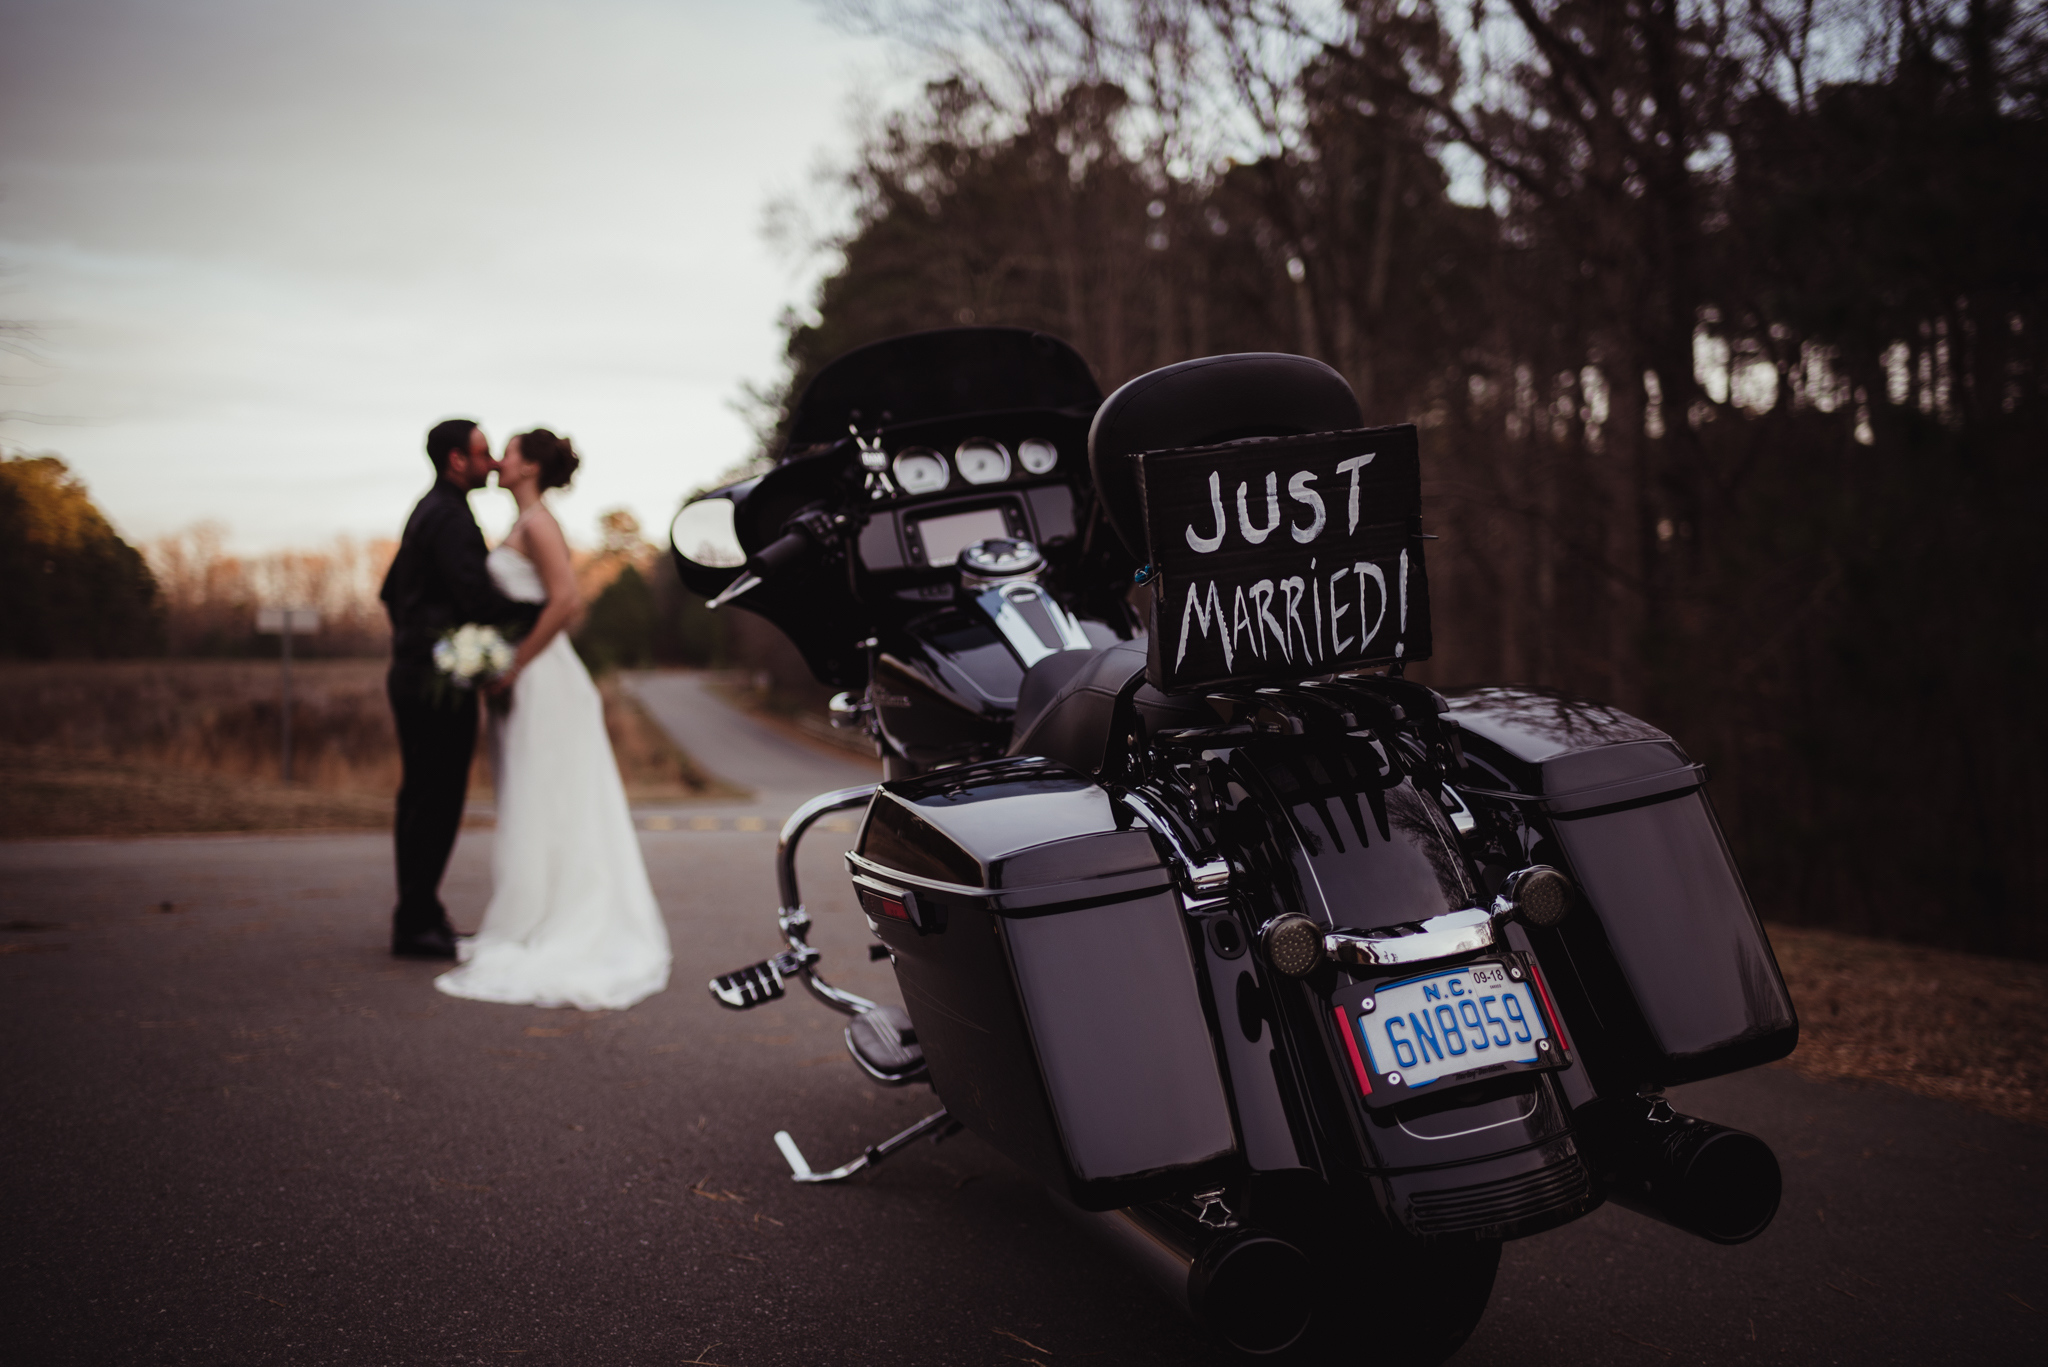 the-bride-and-groom-pose-near-their-motorcycle-after-getting-married-in-raleigh.jpg